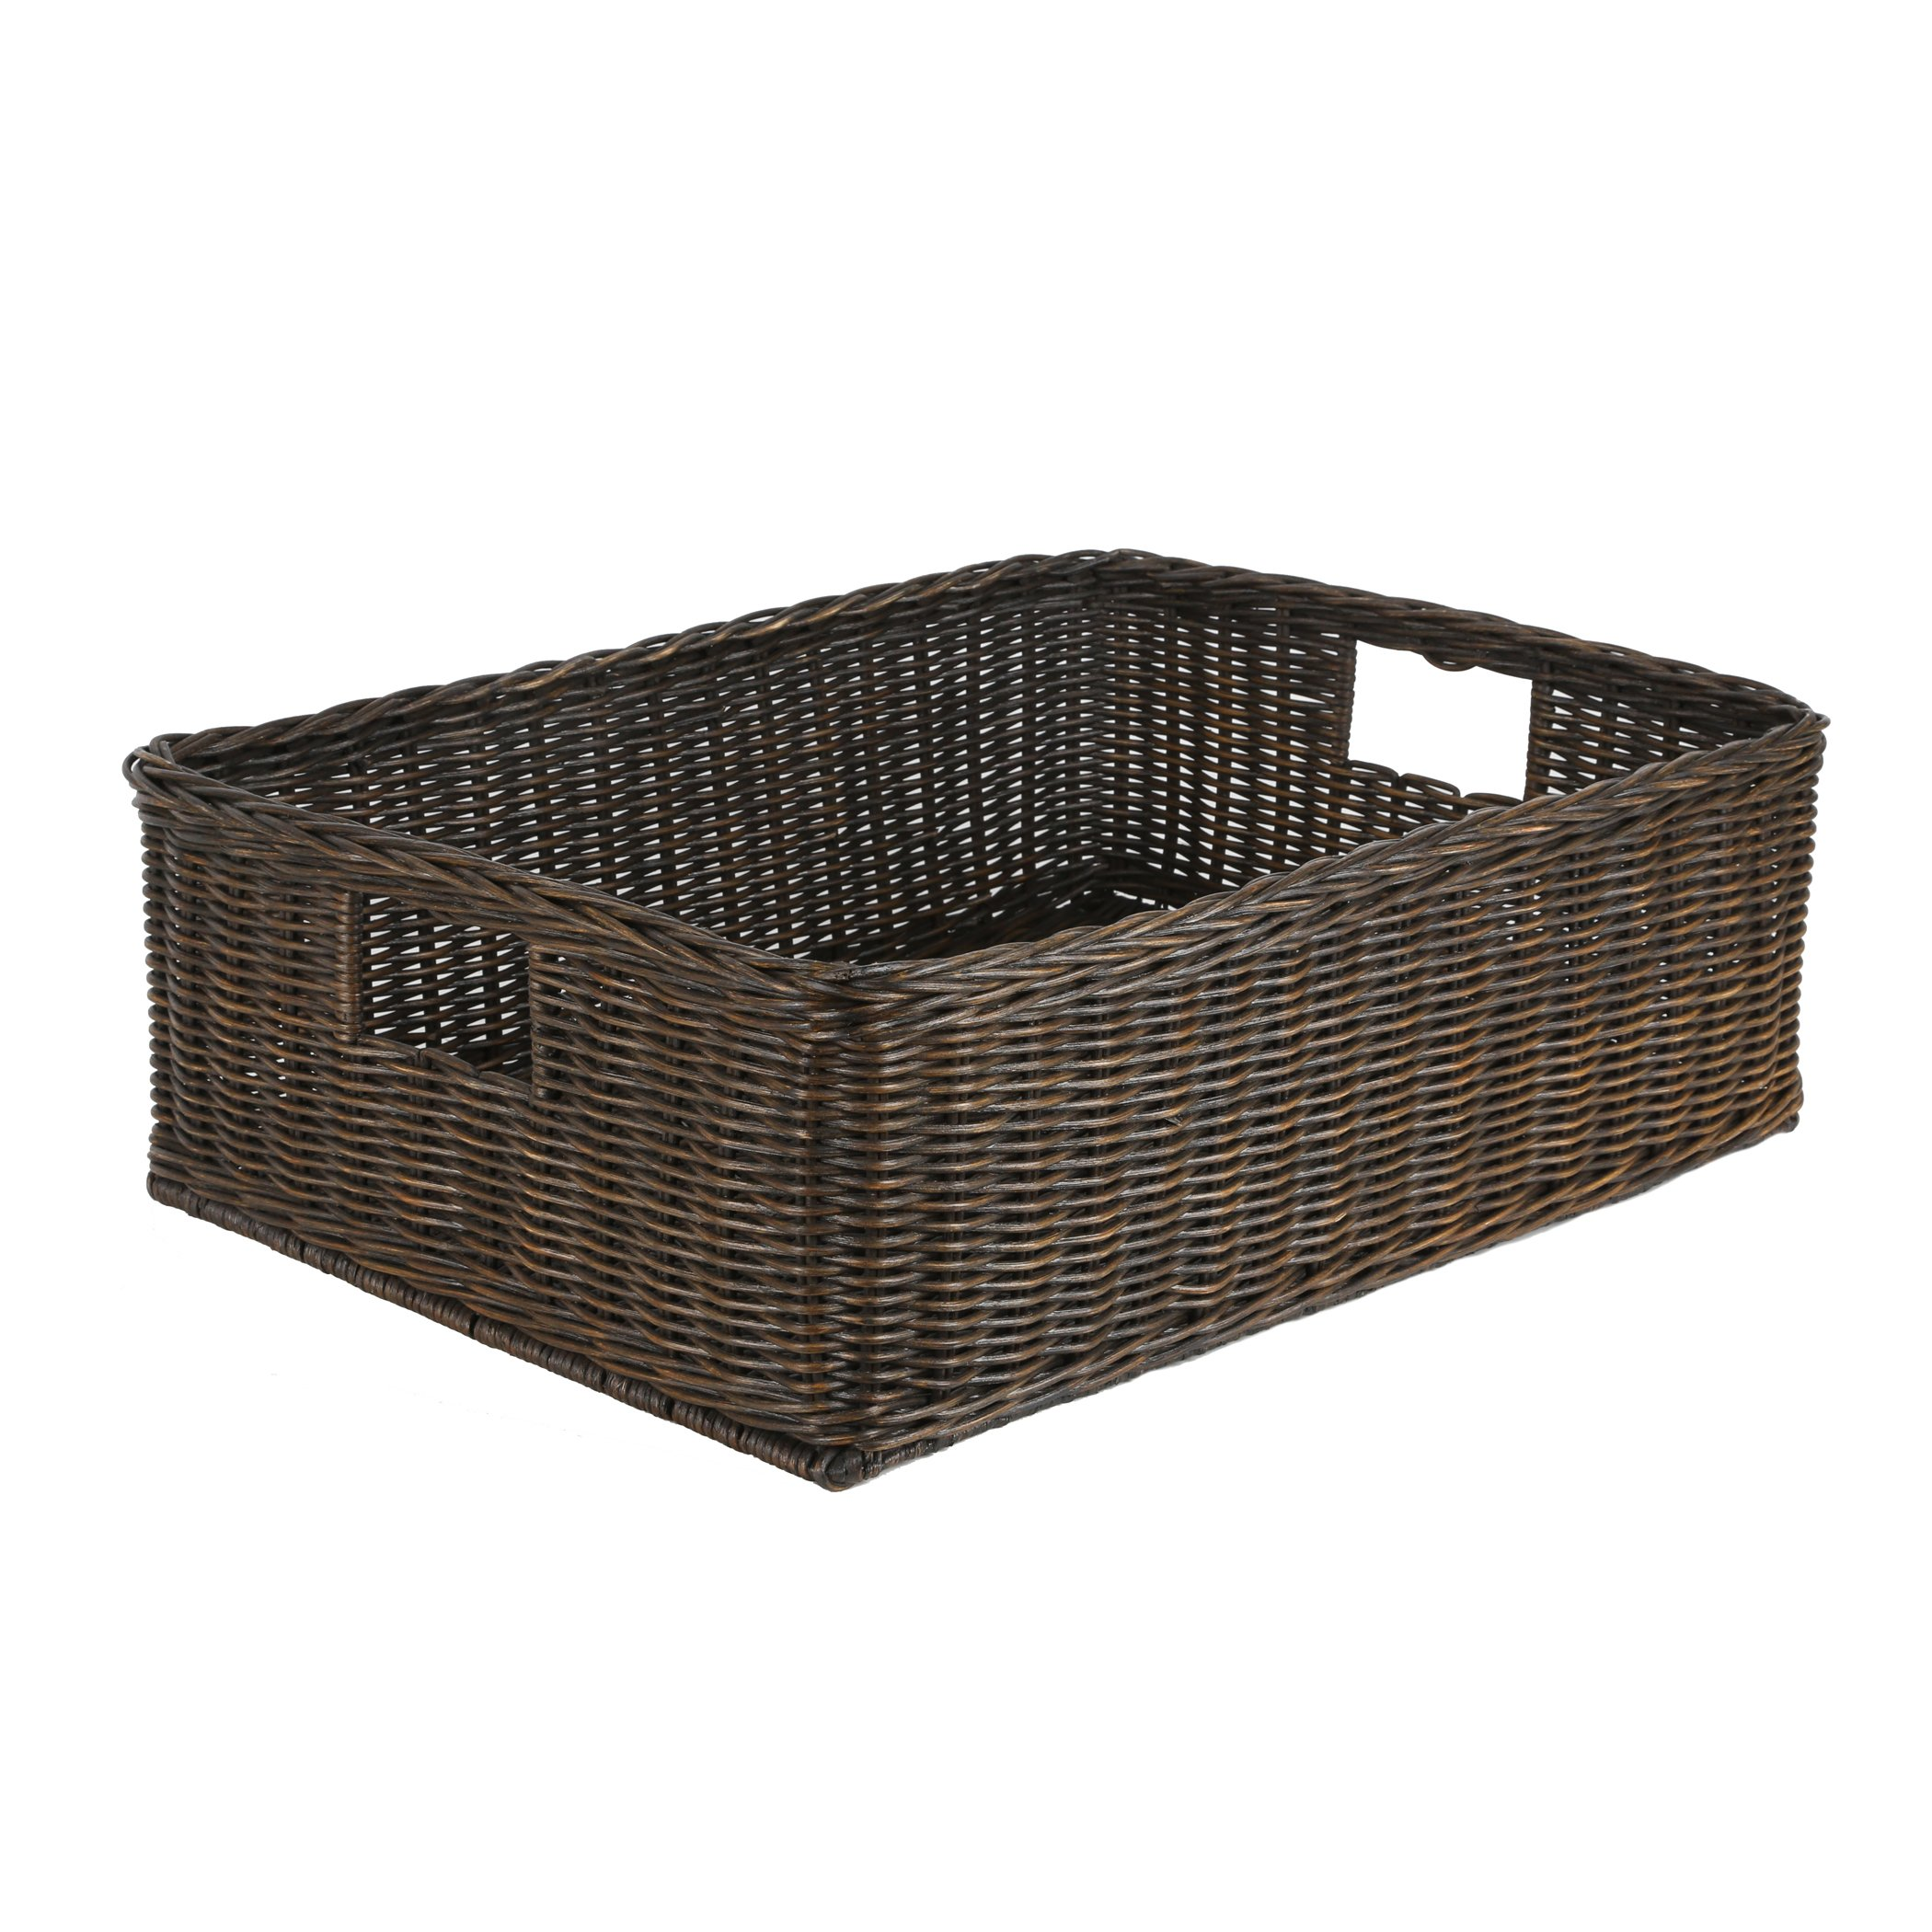 The Basket Lady Under The Bed/Basic Wicker Storage Basket, XL, 26 in L x 19.5 in W x 8 in H, Antique Walnut Brown by The Basket Lady